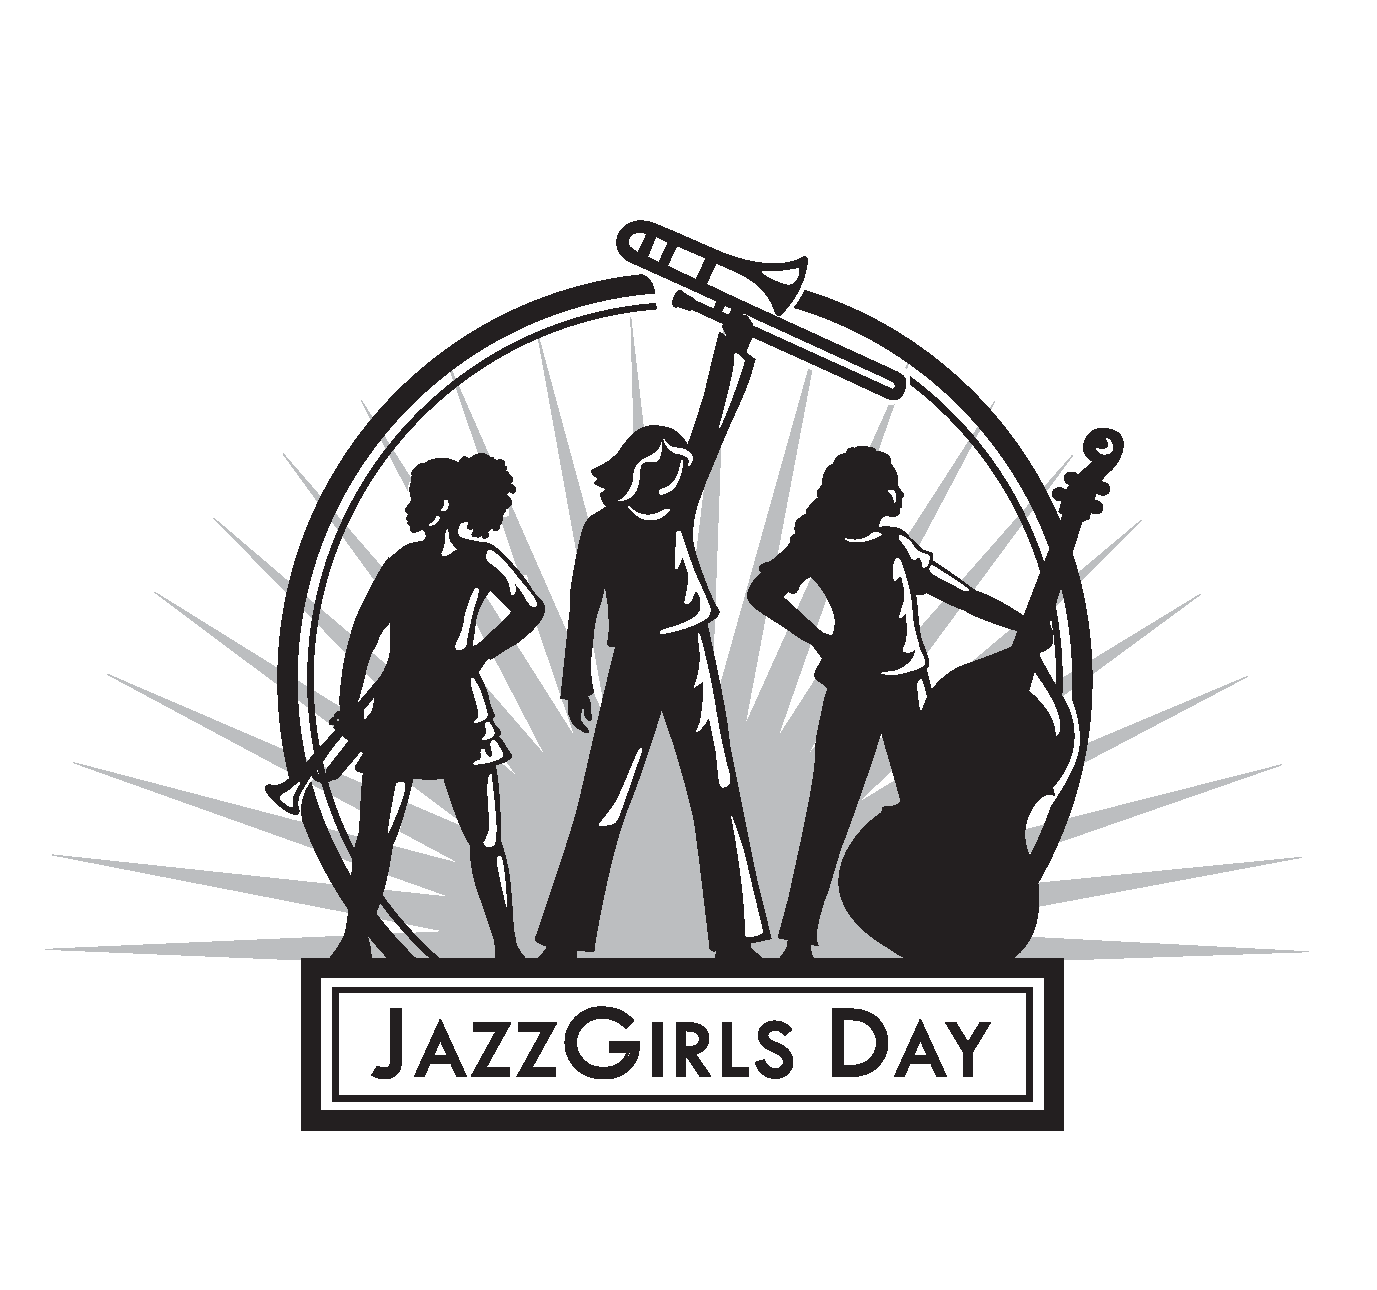 2018 Jazz Girls Day Logo